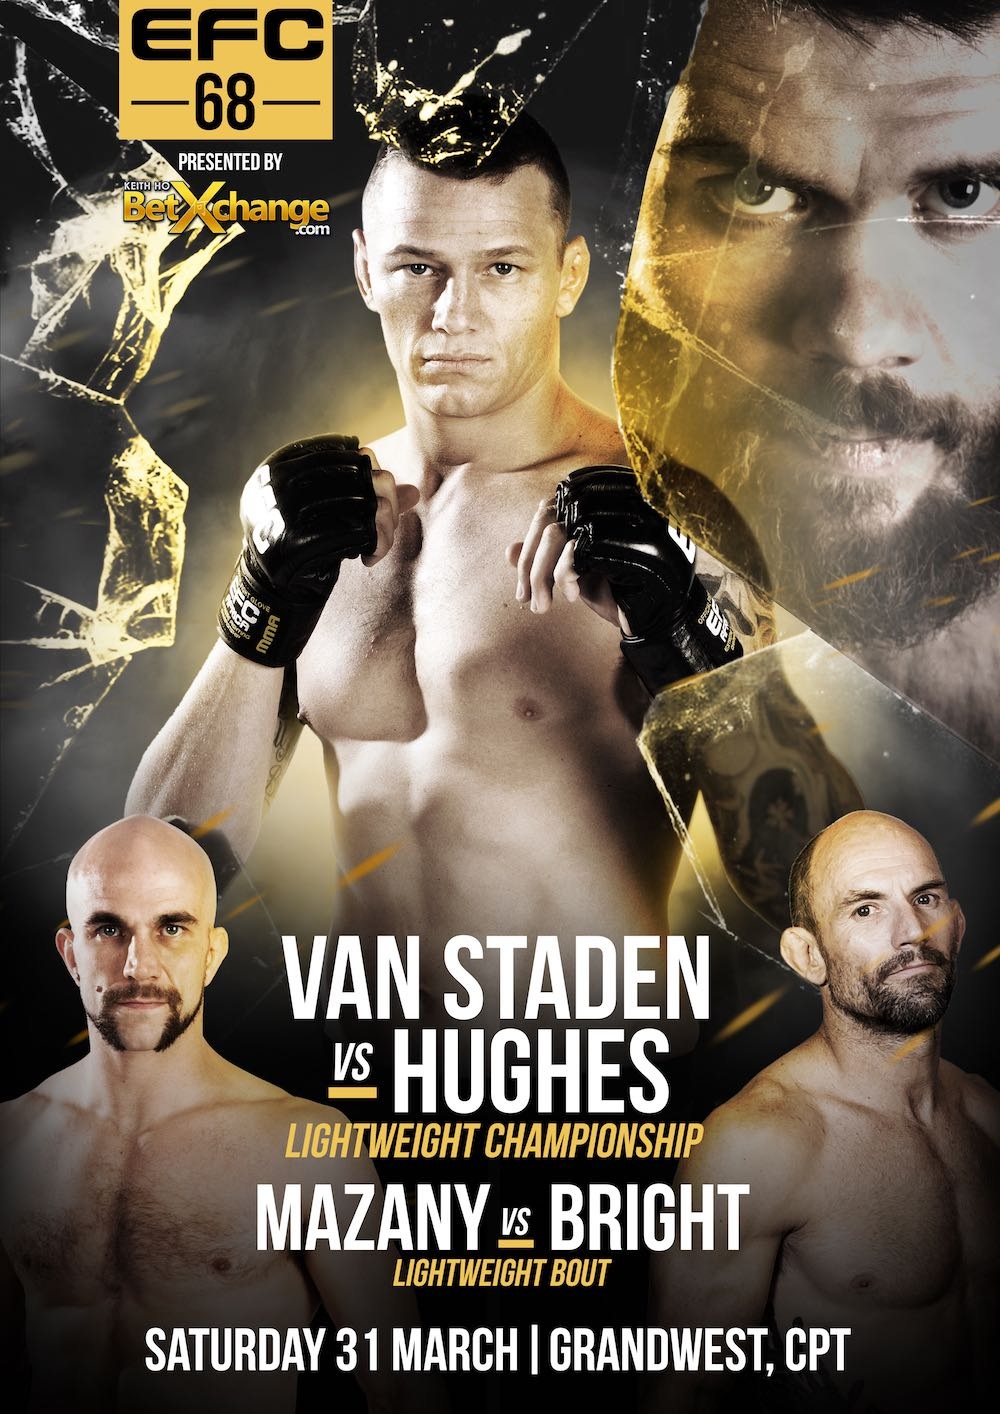 EFC 68 bringing MMA action to Cape Town at the GrandWest Casino